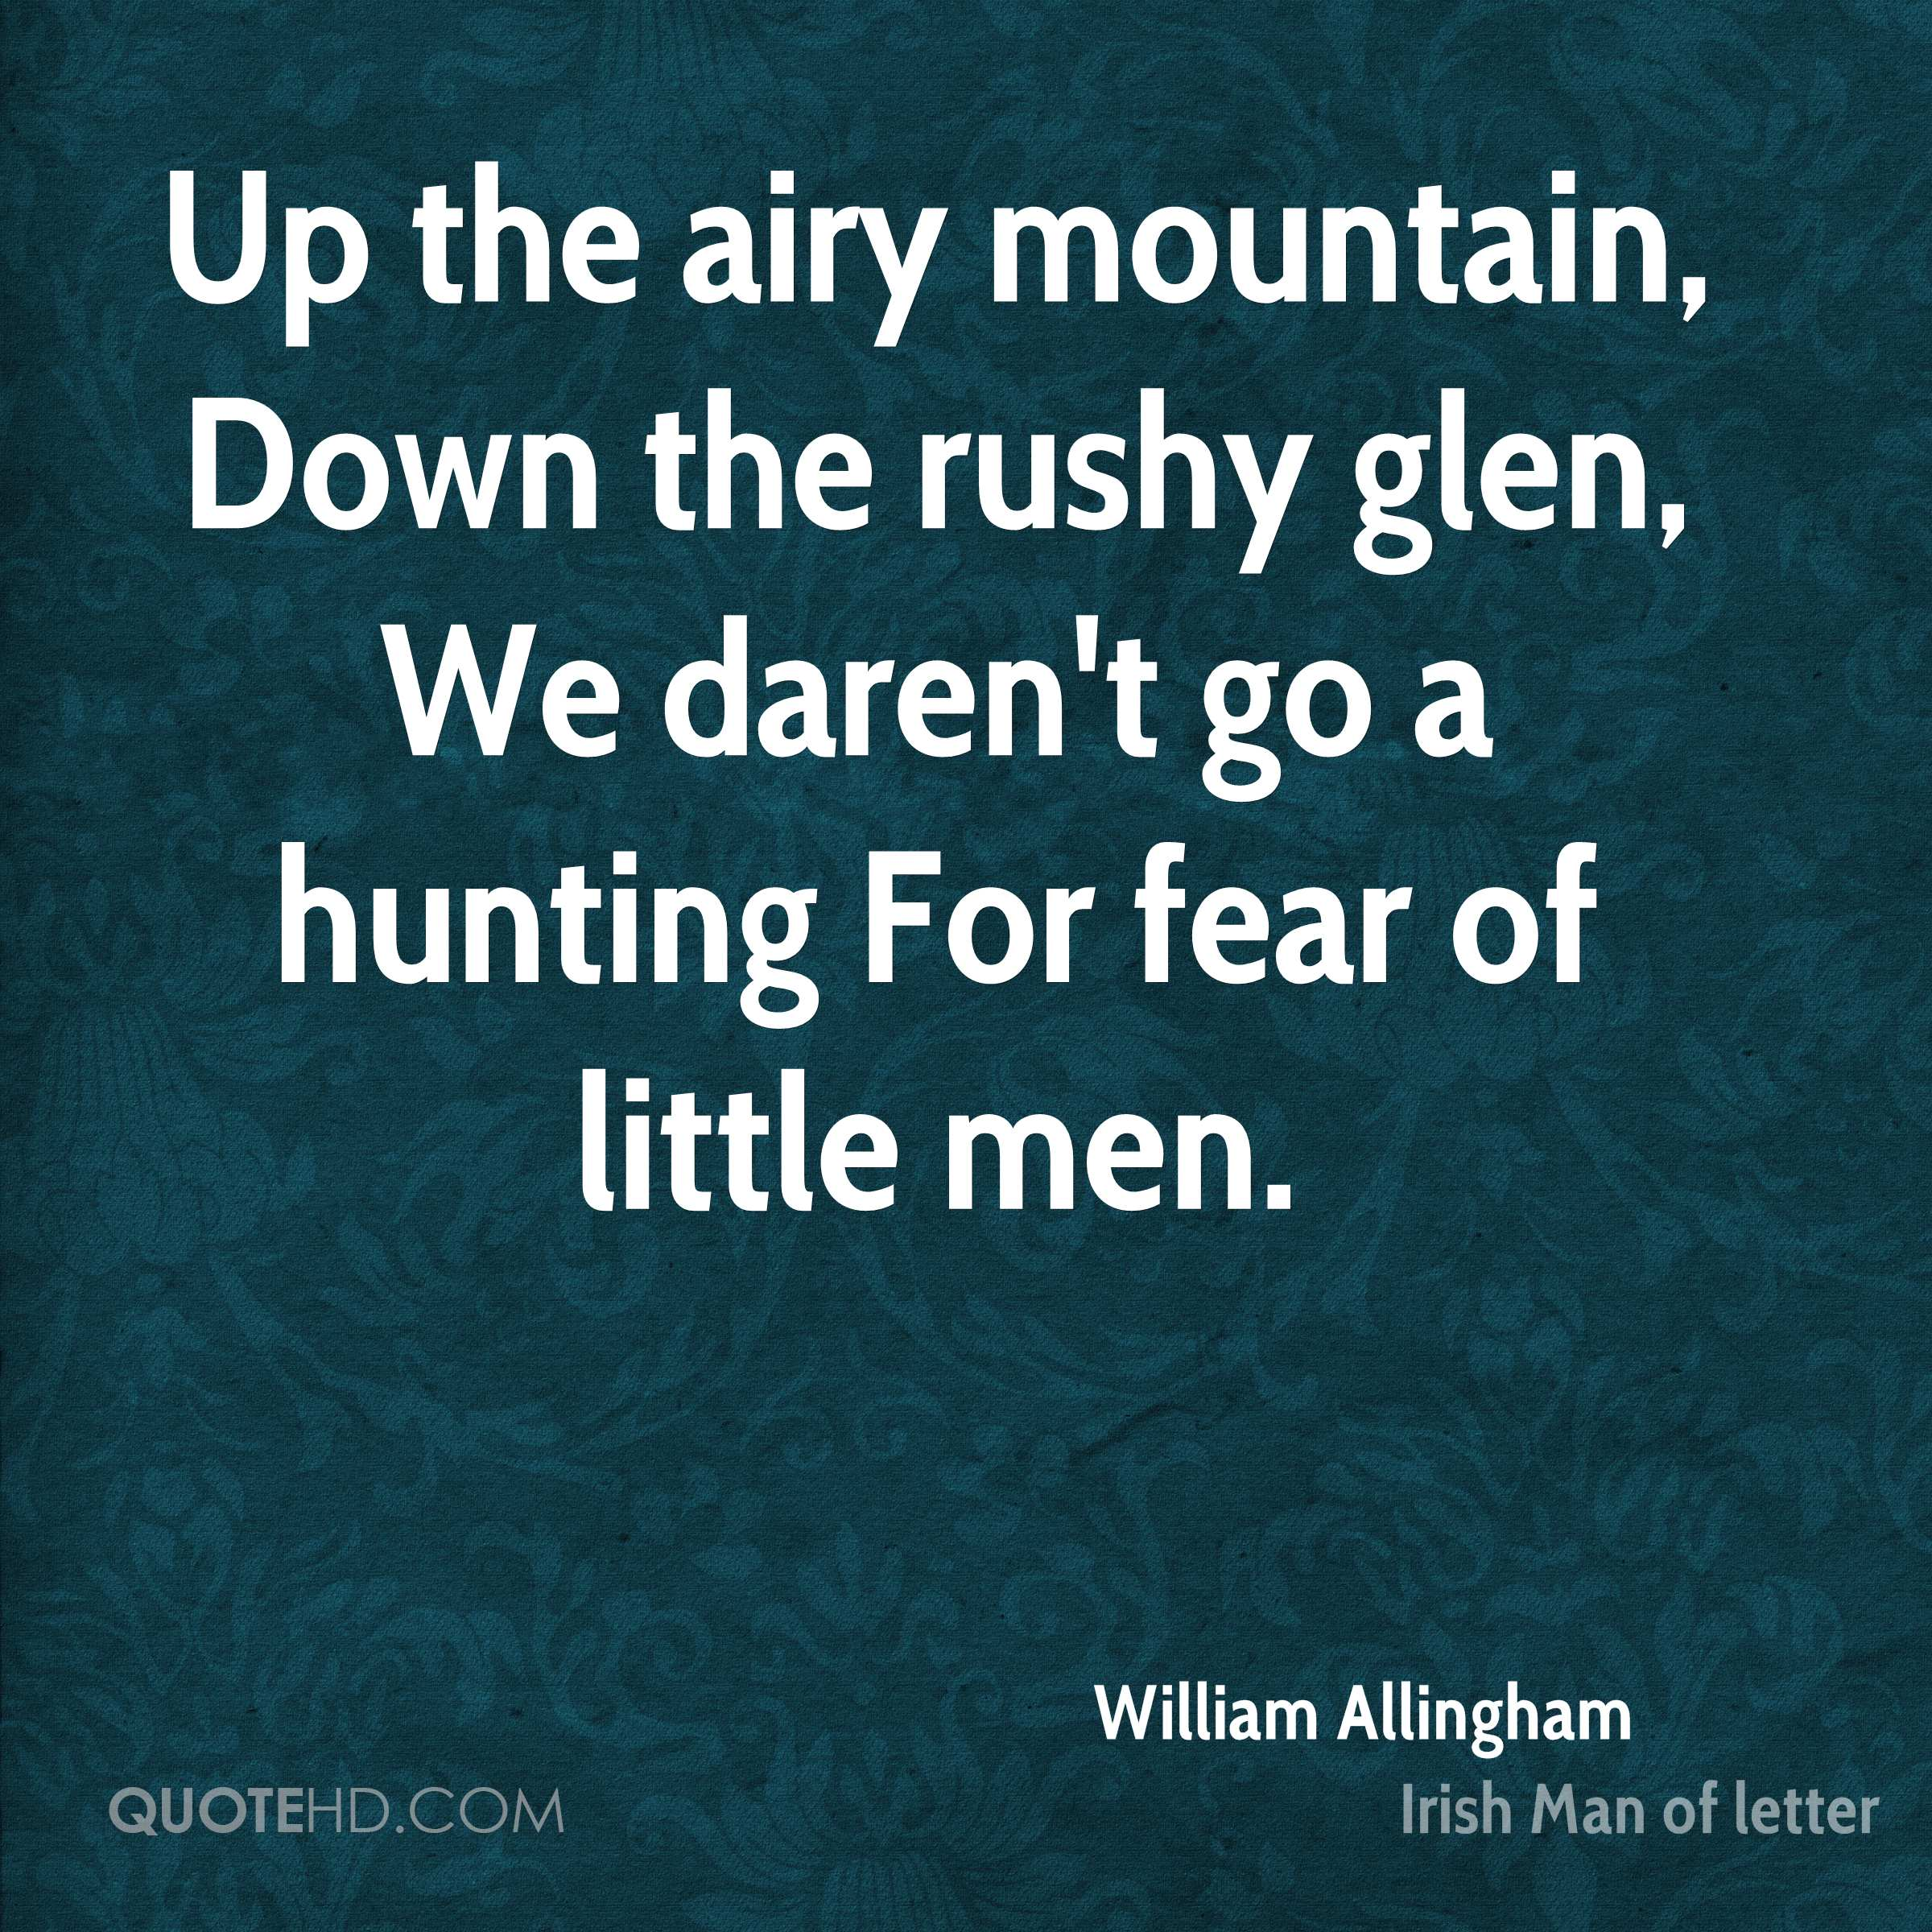 Up the airy mountain, Down the rushy glen, We daren't go a hunting For fear of little men.